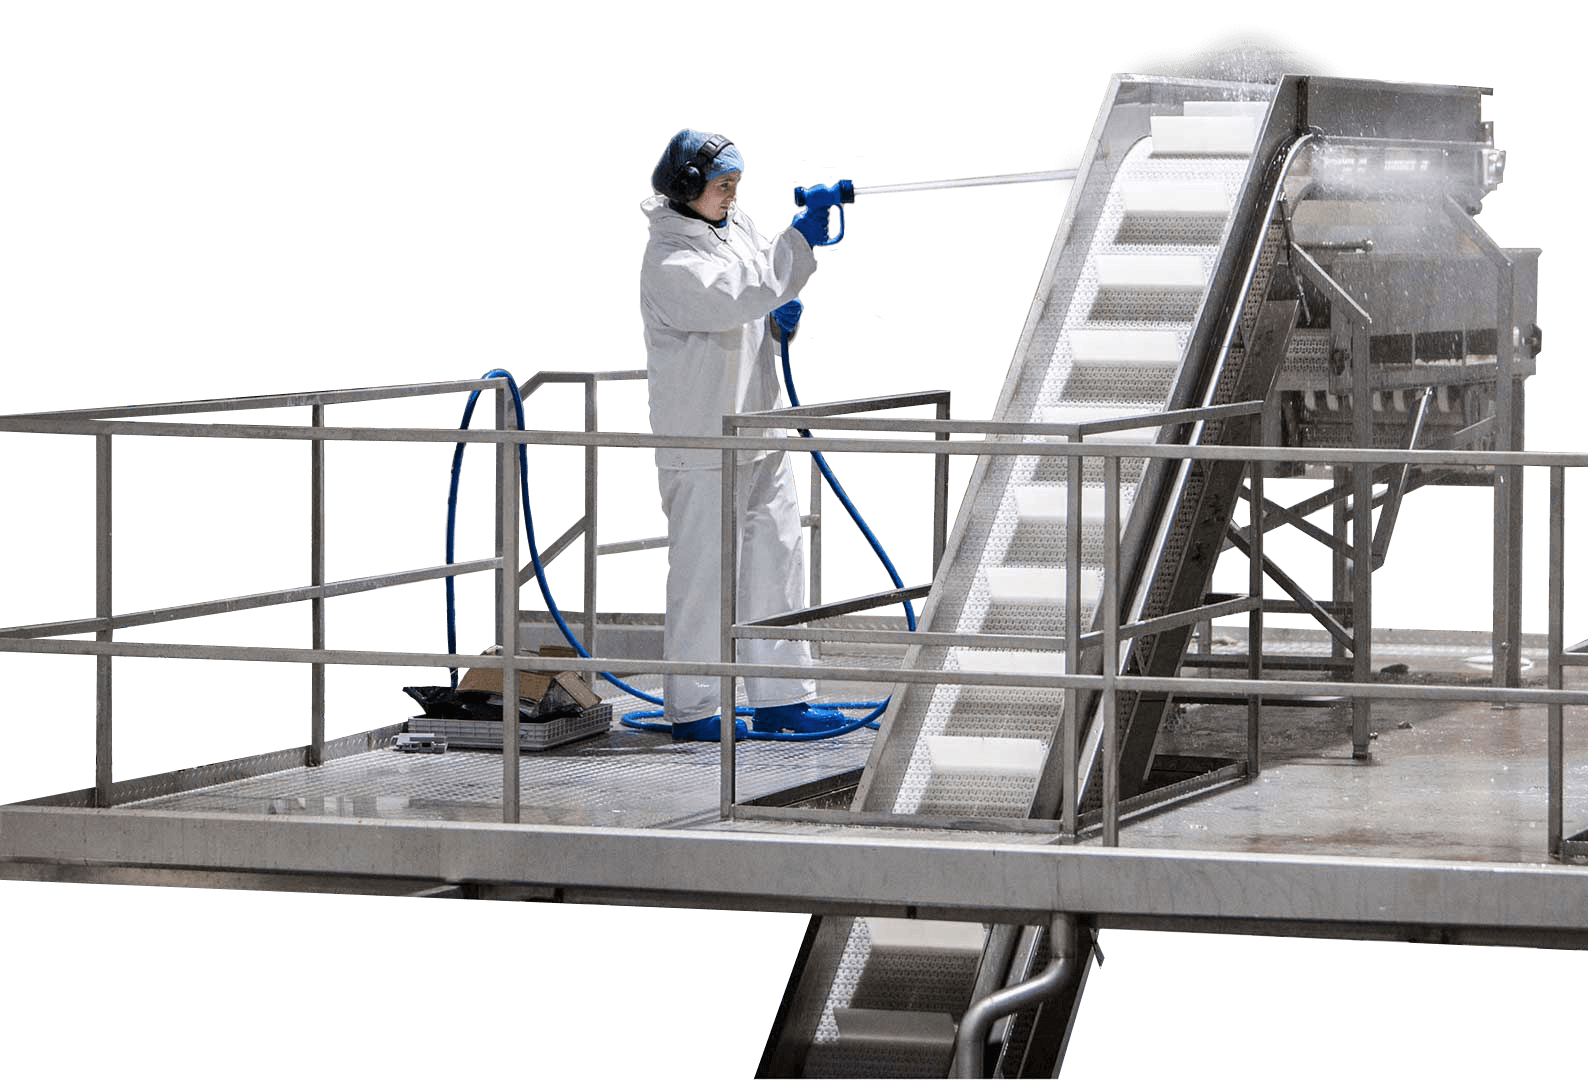 Conveyor Belts for Food Industry. Food processing systems by Skaginn3X, provide careful handling, fast & effective sanitation - the experts in automated conveyor system integration